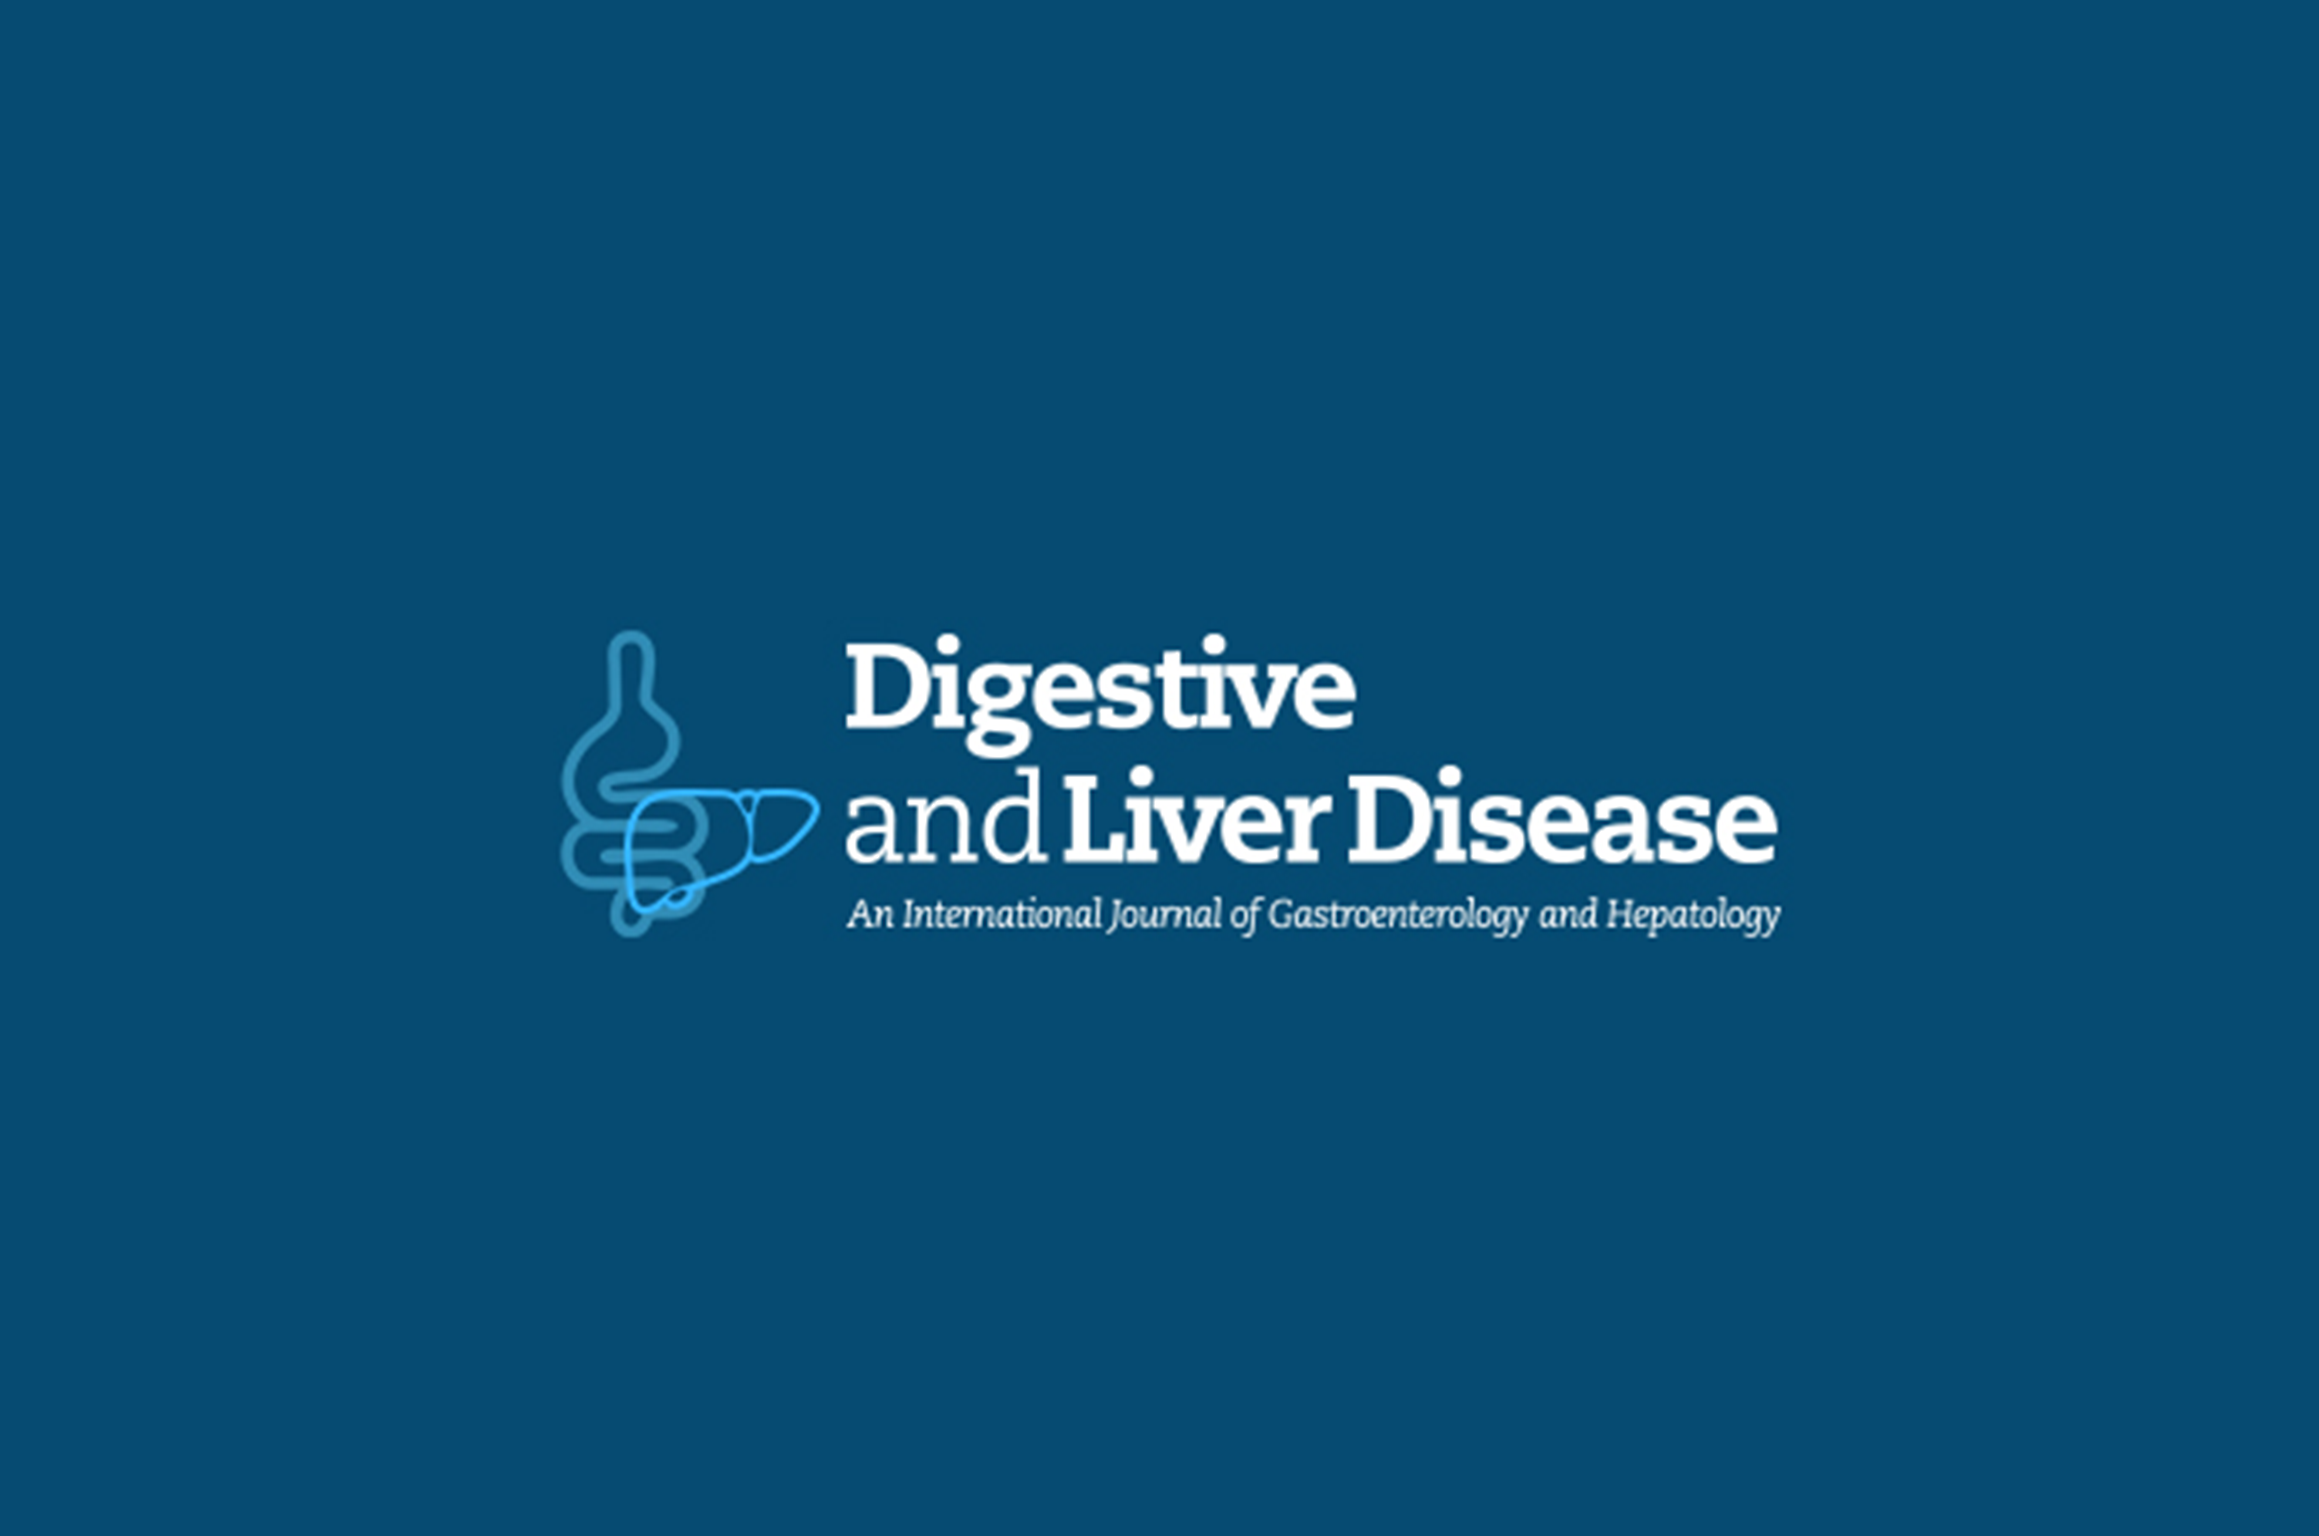 digestive and liver disease